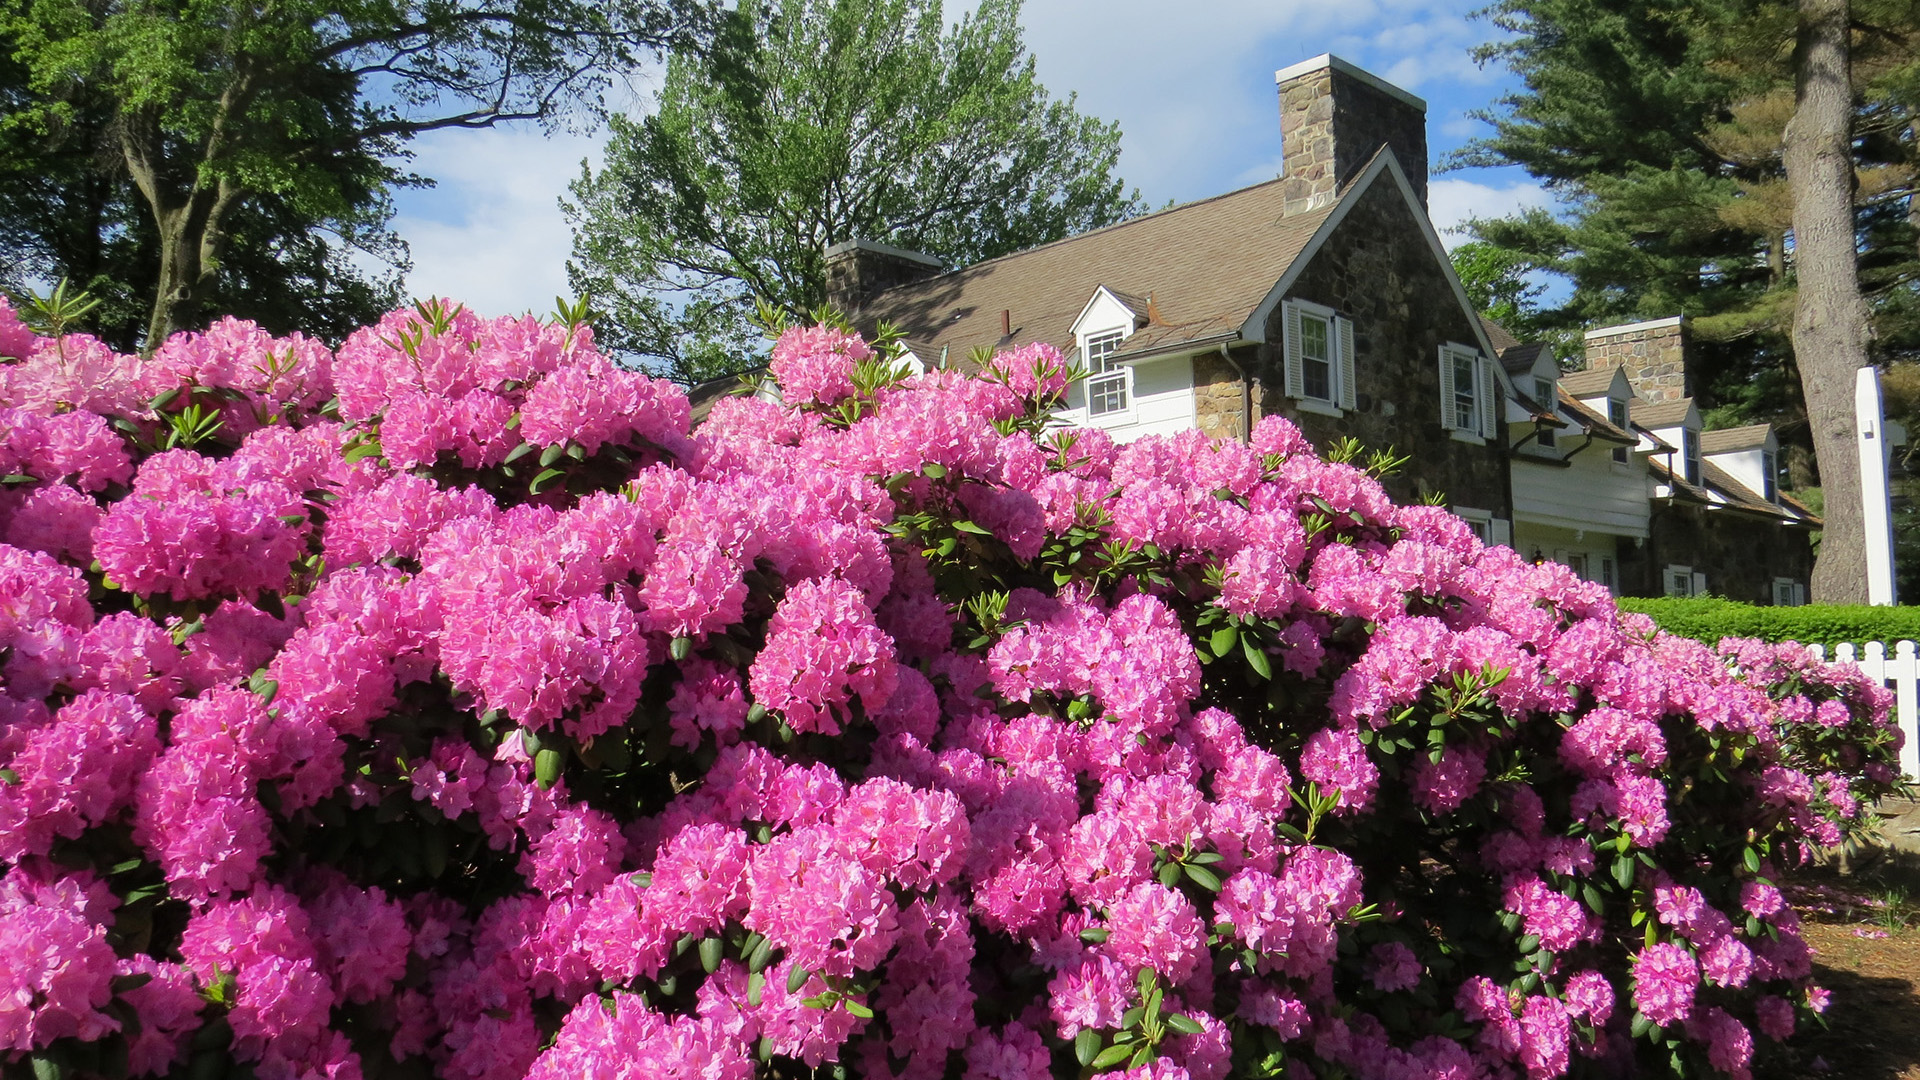 Glenhill Farmhouse Rhododendrons